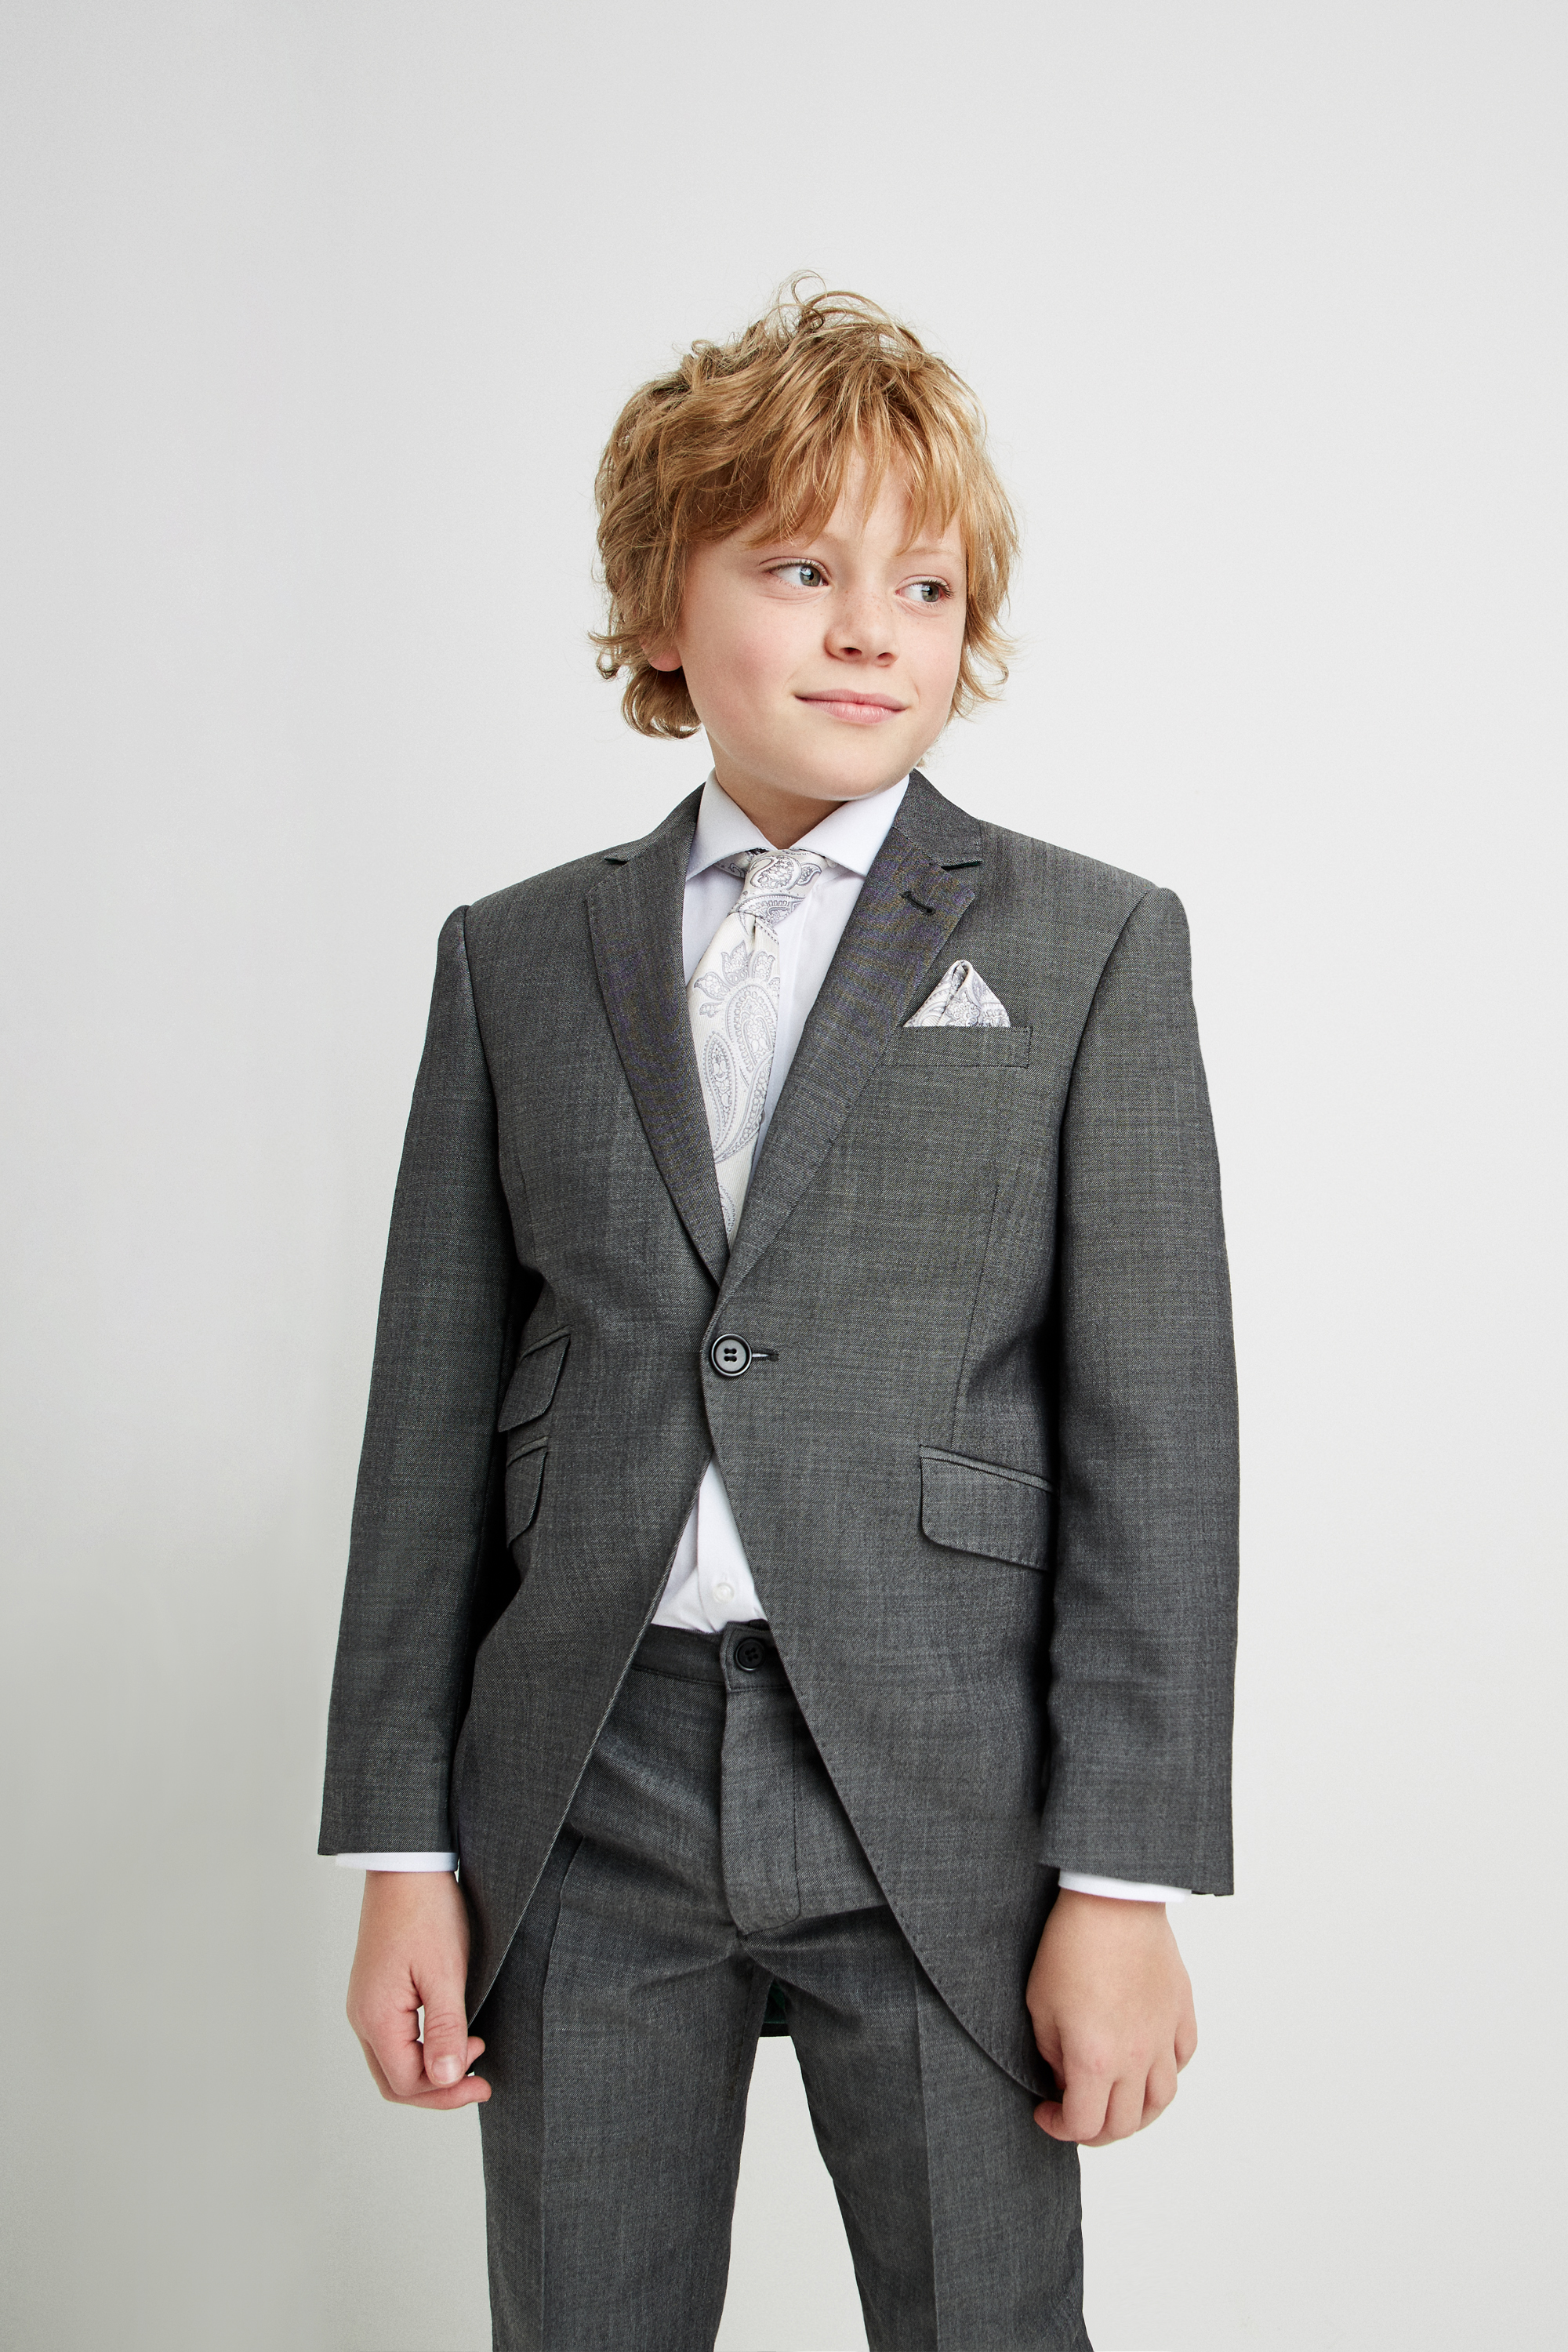 78c15ef5ec2 Boys Suit Hire | Junior Suit Hire From £49 | Moss Hire